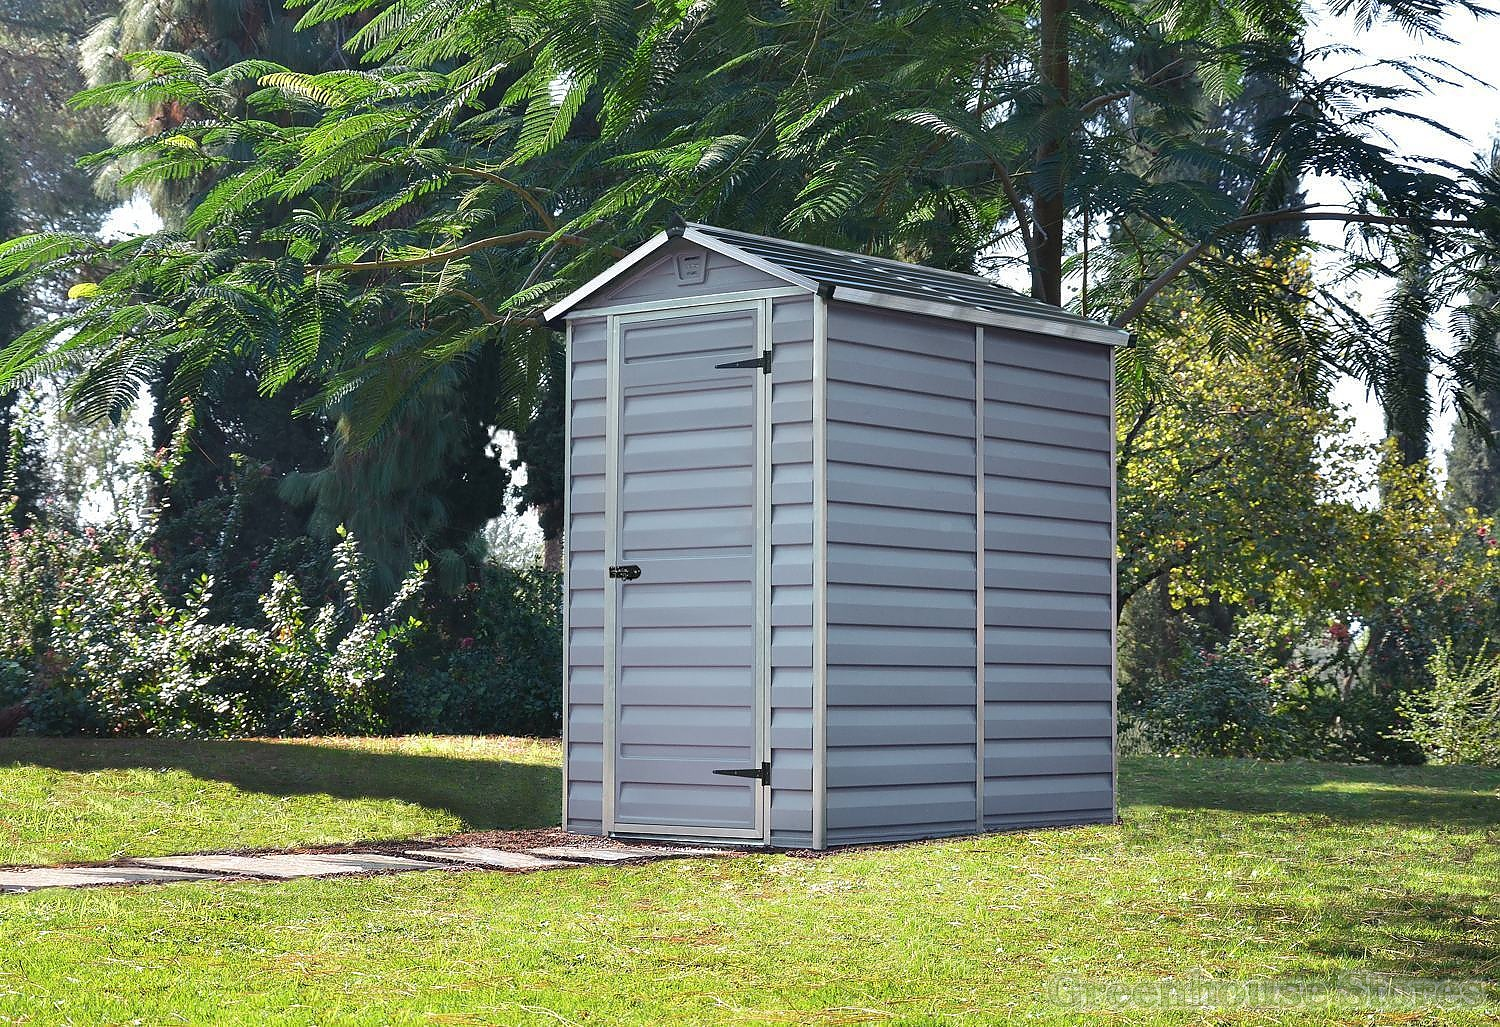 Palram 4x6 Plastic Skylight Grey Shed Greenhouse Stores